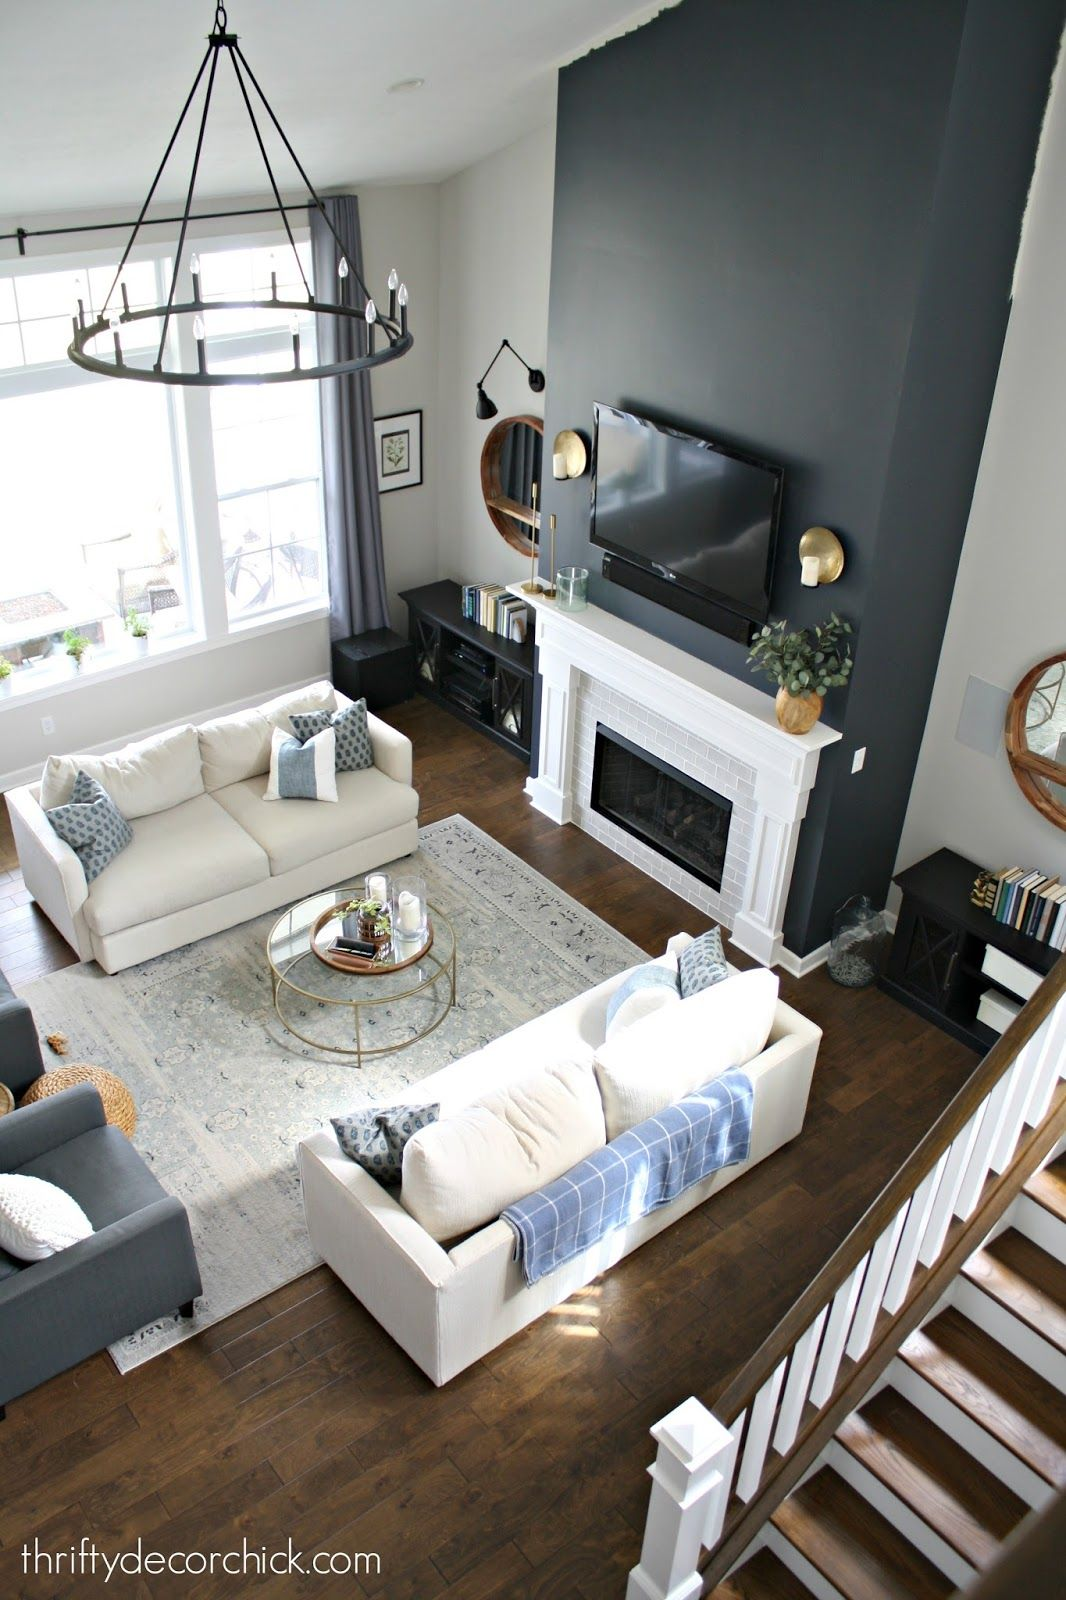 Tall Fireplace Wall Transformation With Paint Accent Walls In Living Room Home Living Room Living Room Remodel #painting #accent #walls #living #room